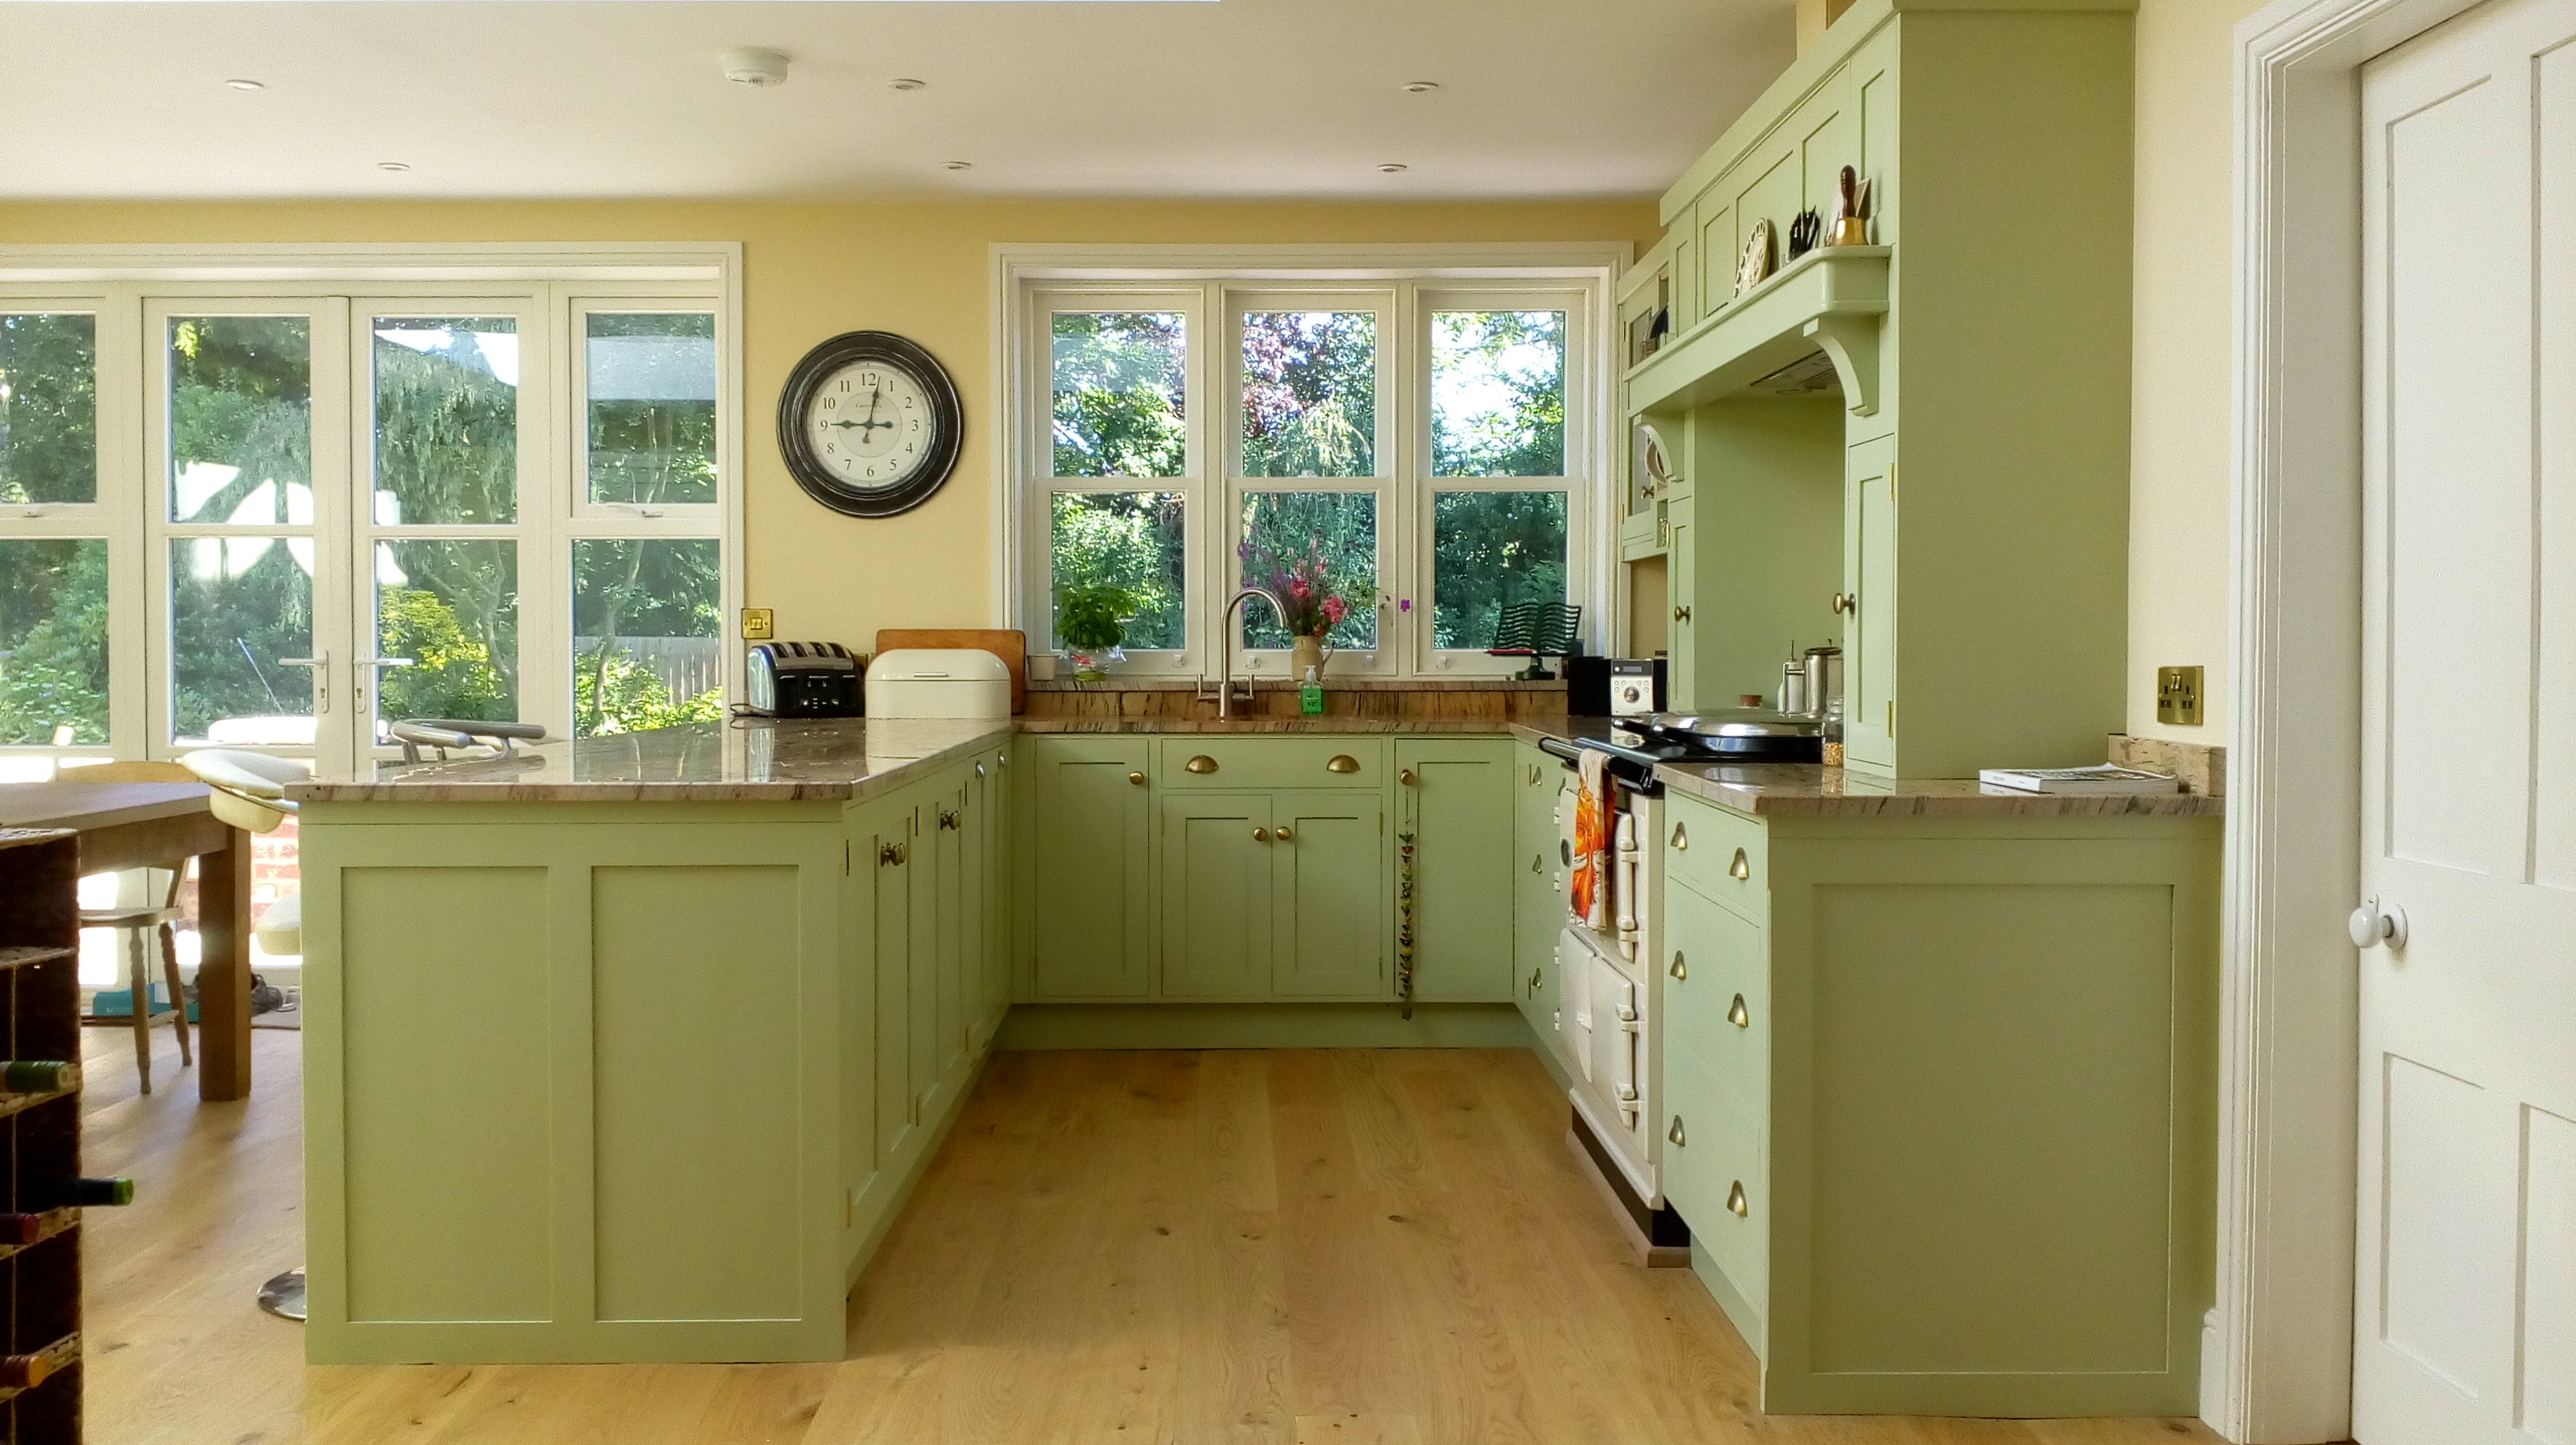 Classic kitchen installation by Dan Nickson Joinery.